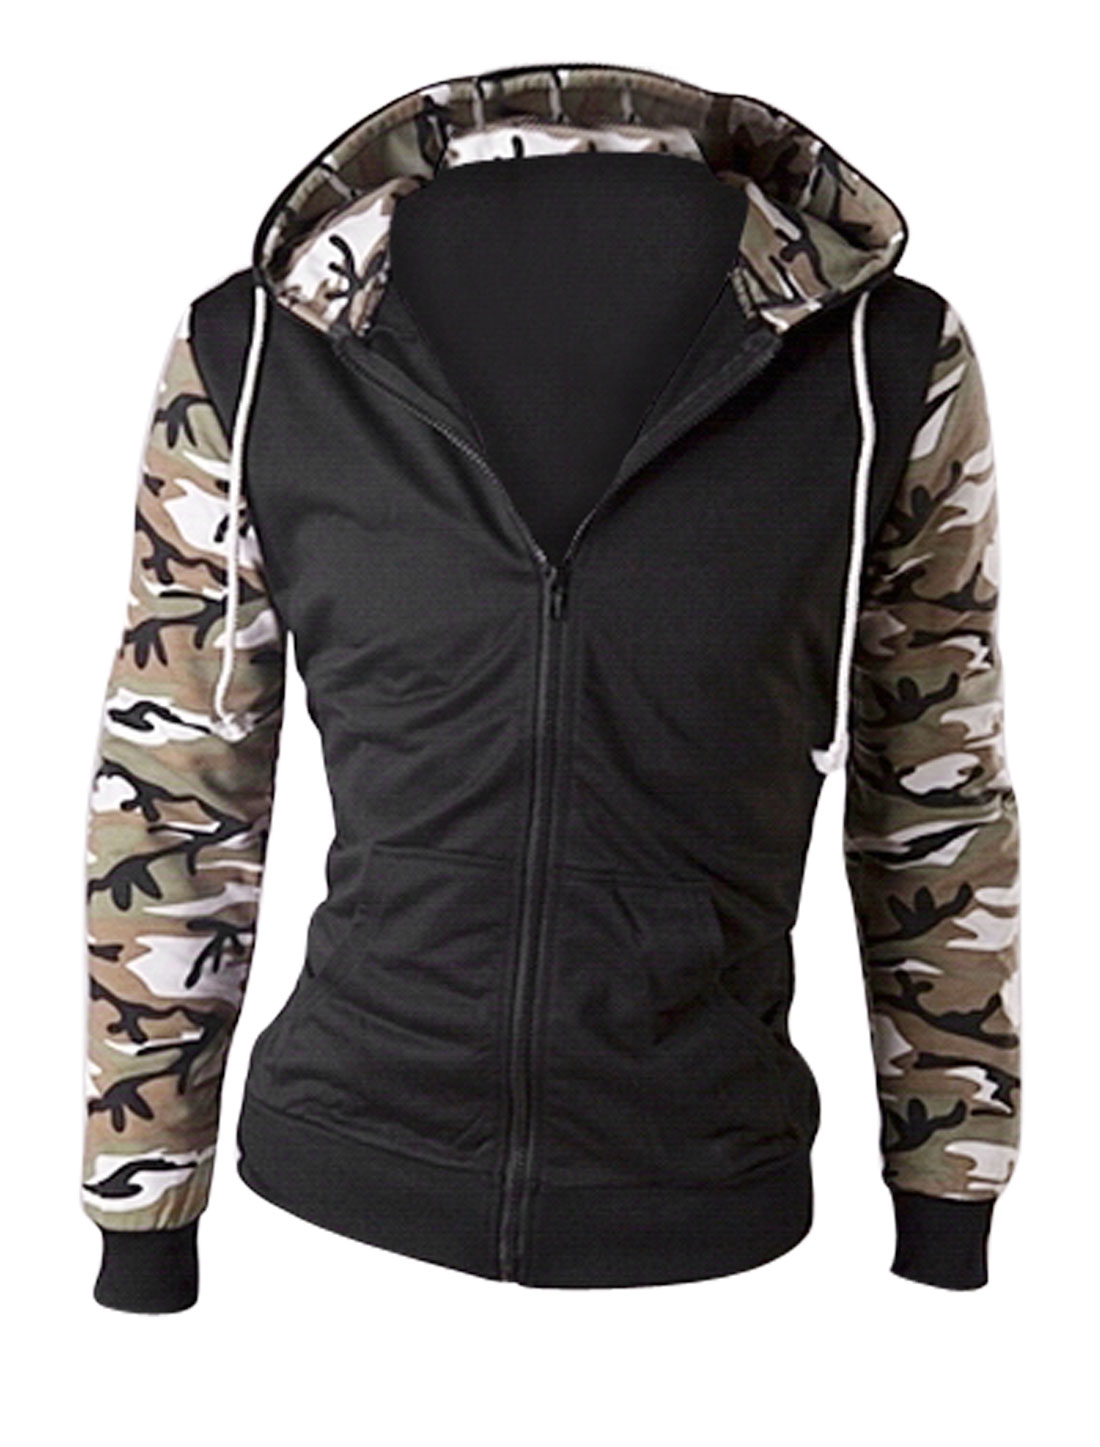 Men Zip Closure Hooded Camouflage Pattern Fashion Jacket Coffee Black M